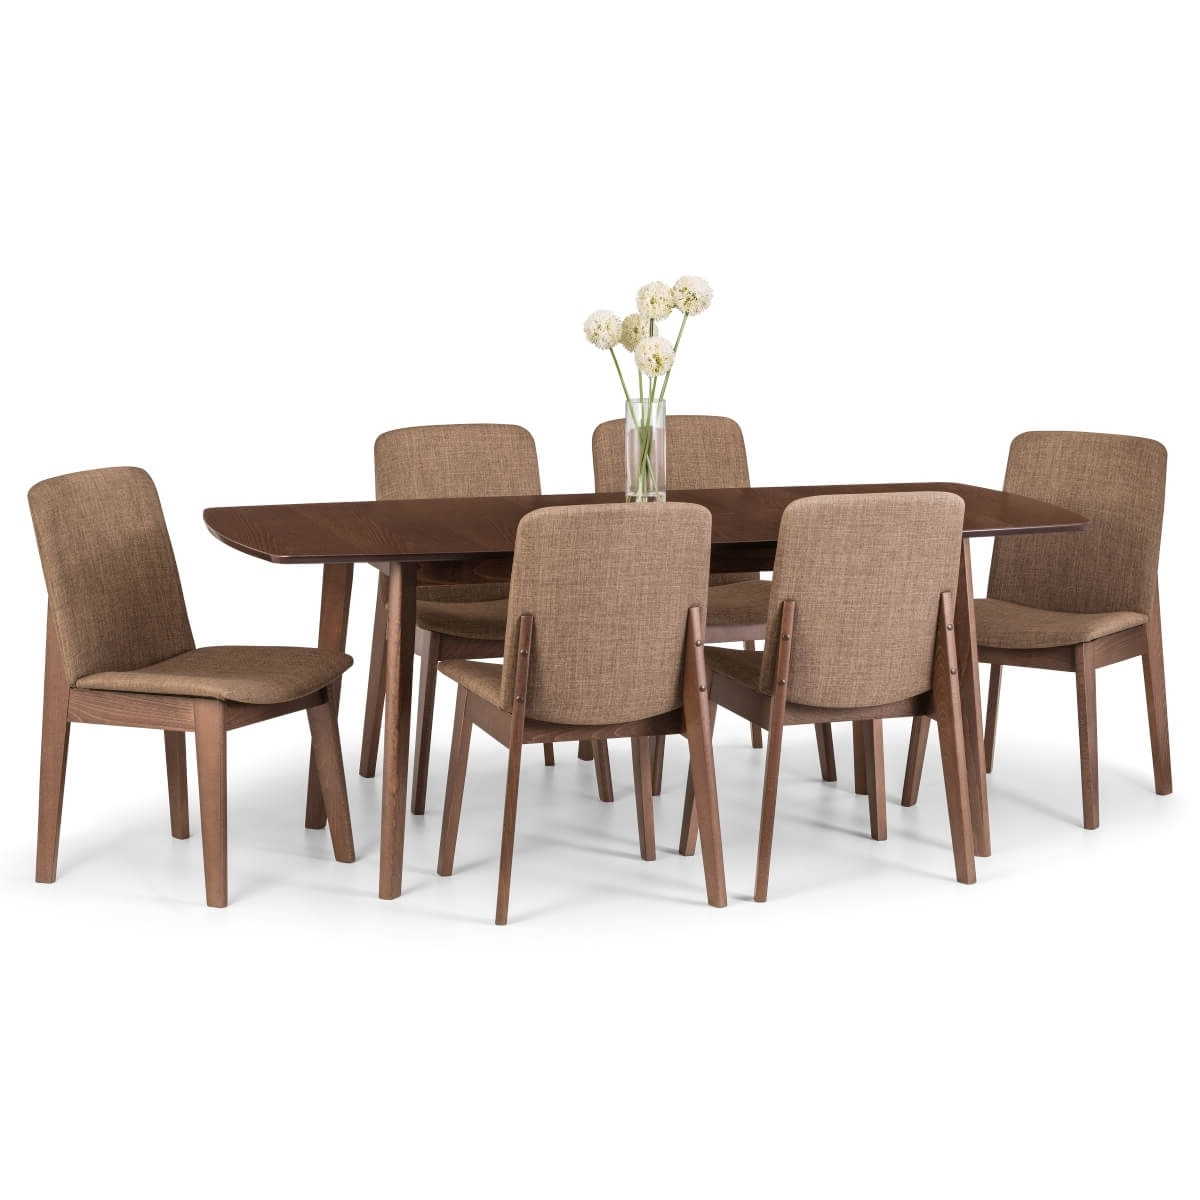 Well Known Dining Set – Kensington Dining Table, 6 Chairs In Walnut Ken205 Throughout Walnut Dining Tables And 6 Chairs (View 2 of 25)